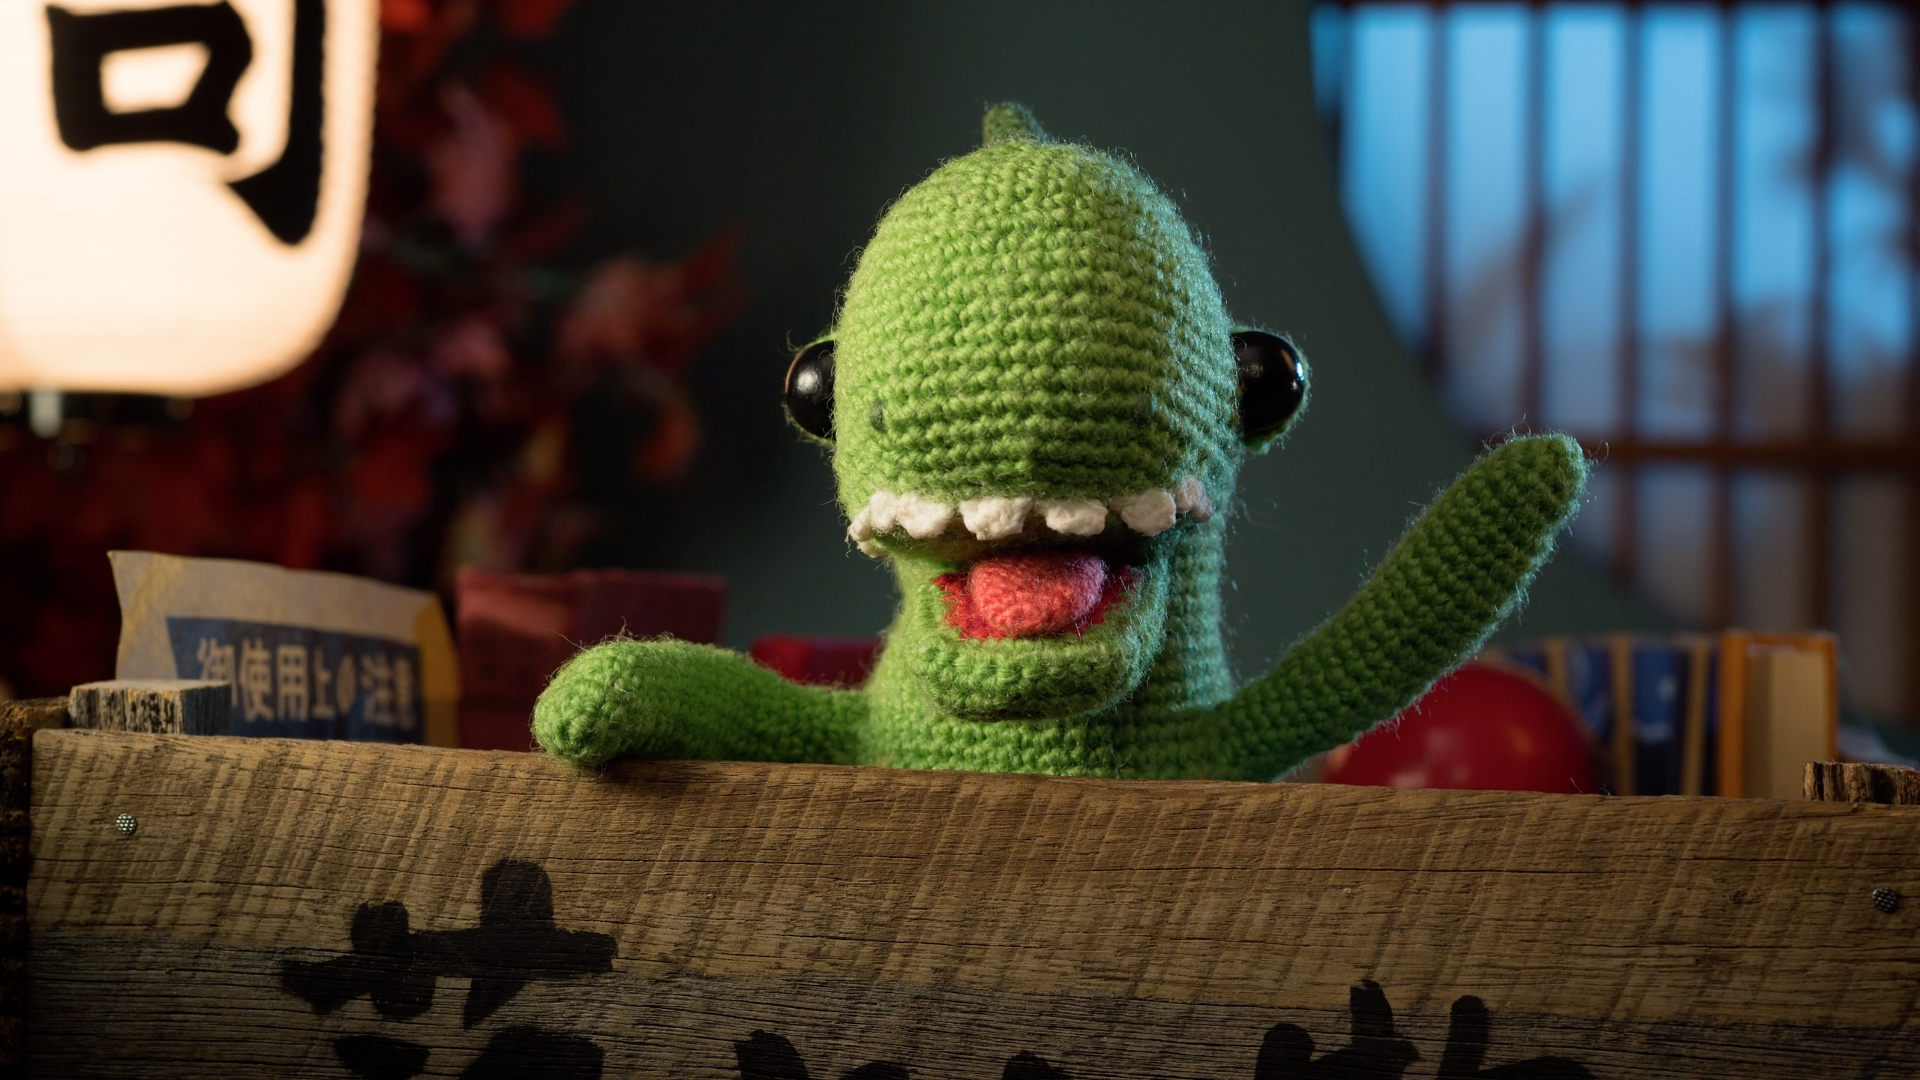 Stop motion knitted toys find love in Lost & Found (sort of)